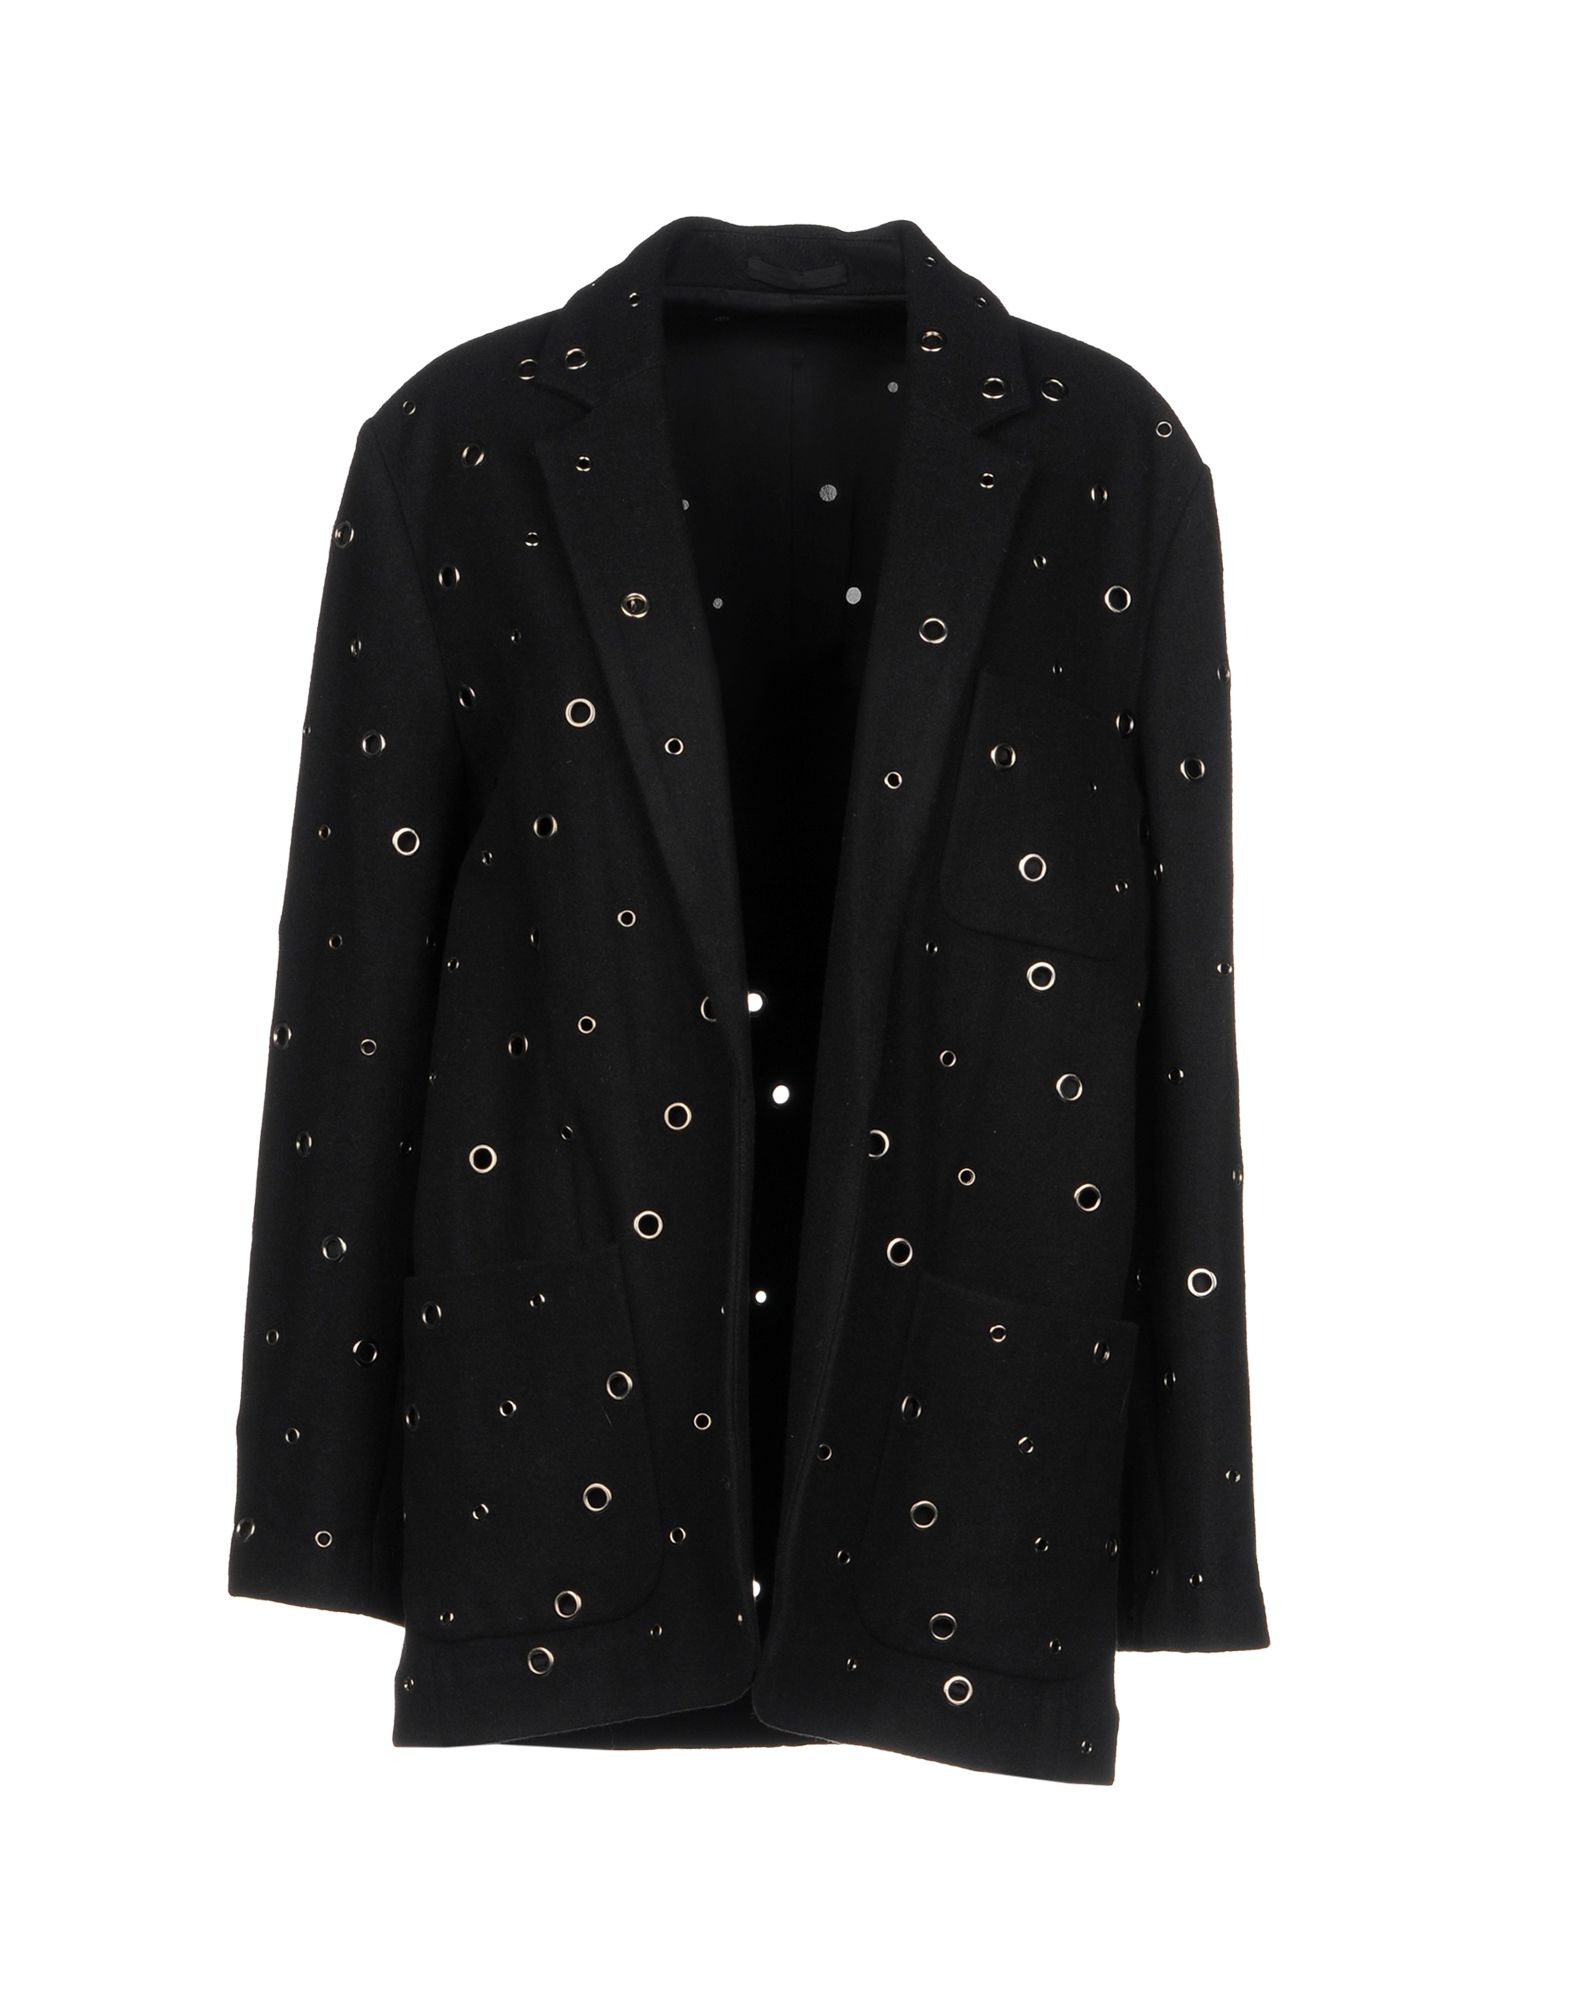 LAURENCE BRAS Coat in Black